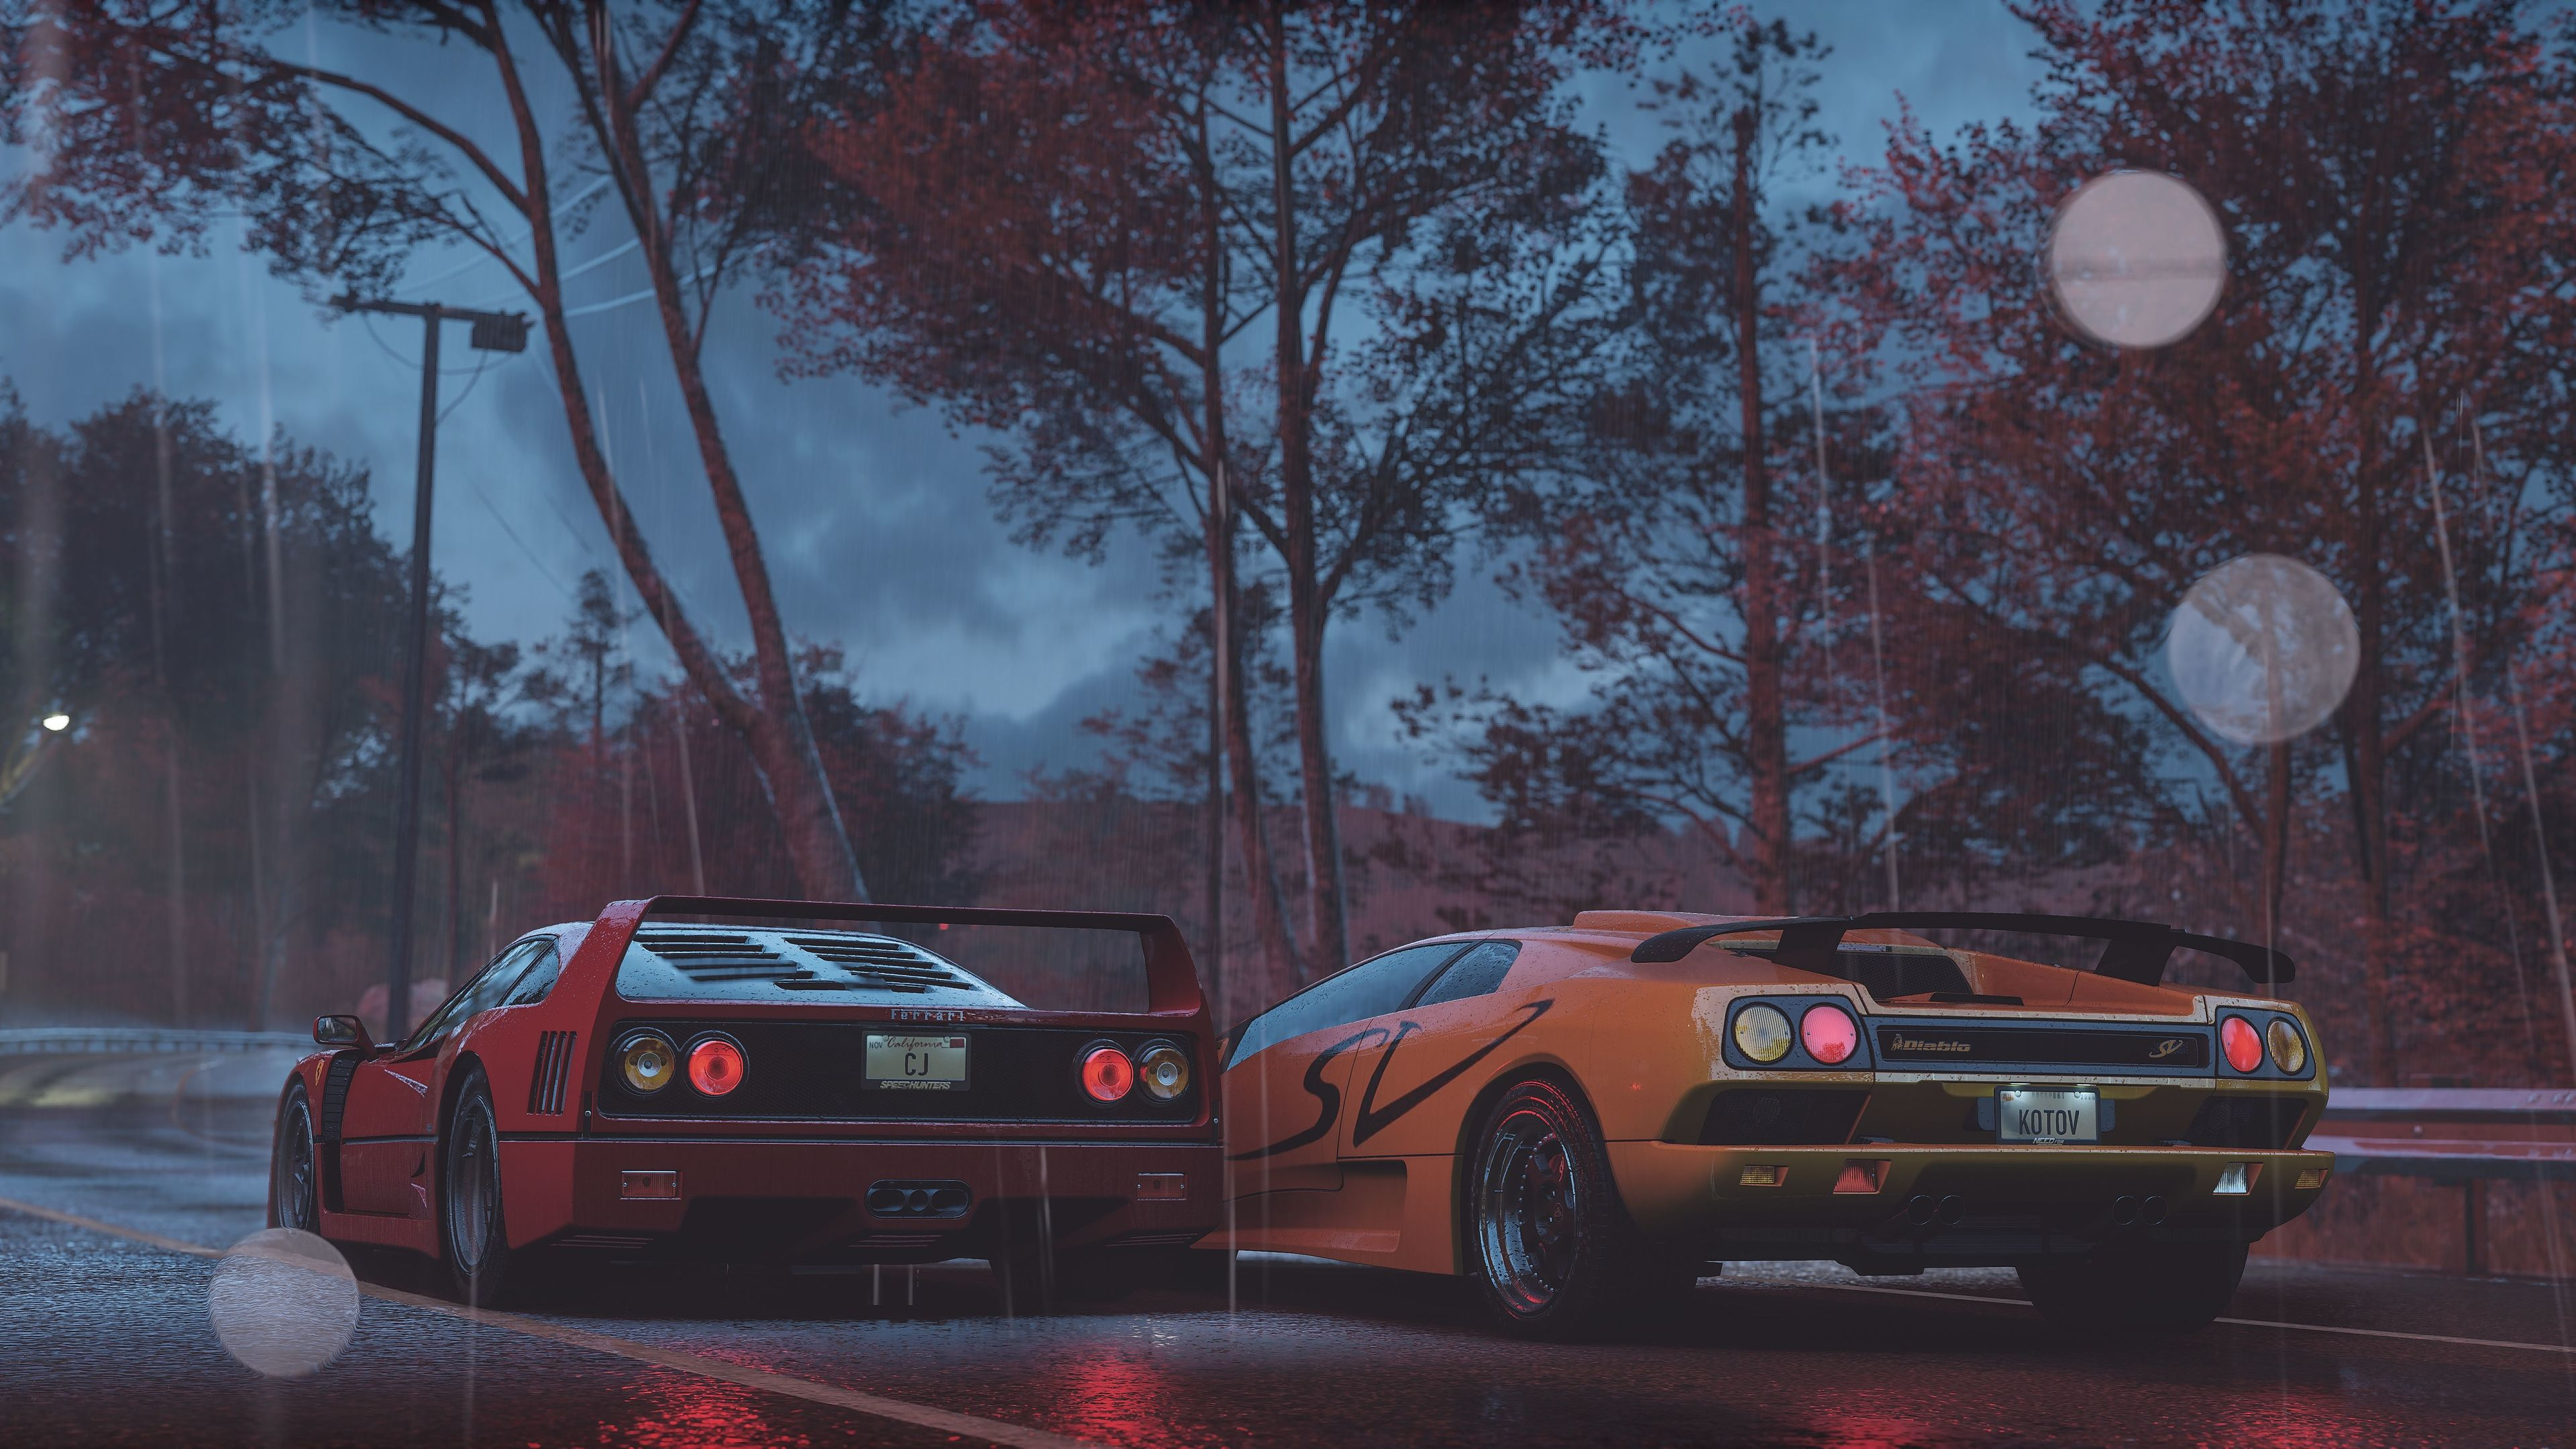 nfs cars 4k 1553074443 - Nfs Cars 4k - need for speed wallpapers, hd-wallpapers, games wallpapers, cars wallpapers, 8k wallpapers, 5k wallpapers, 4k-wallpapers